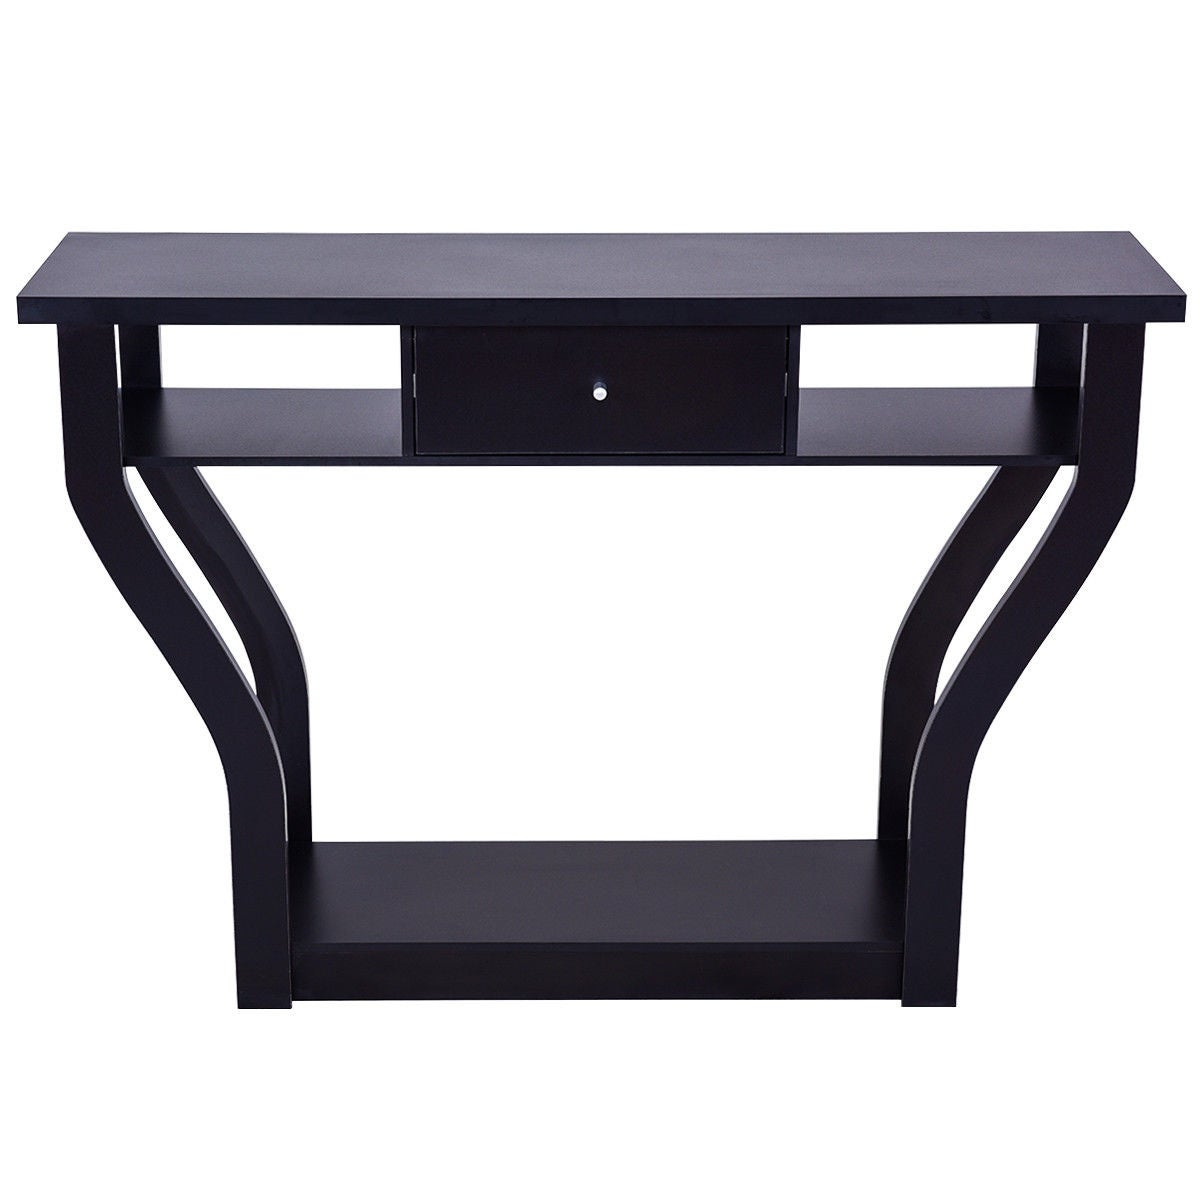 Shop costway black accent console table modern sofa entryway hallway hall furniture w drawer free shipping today overstock 20461930